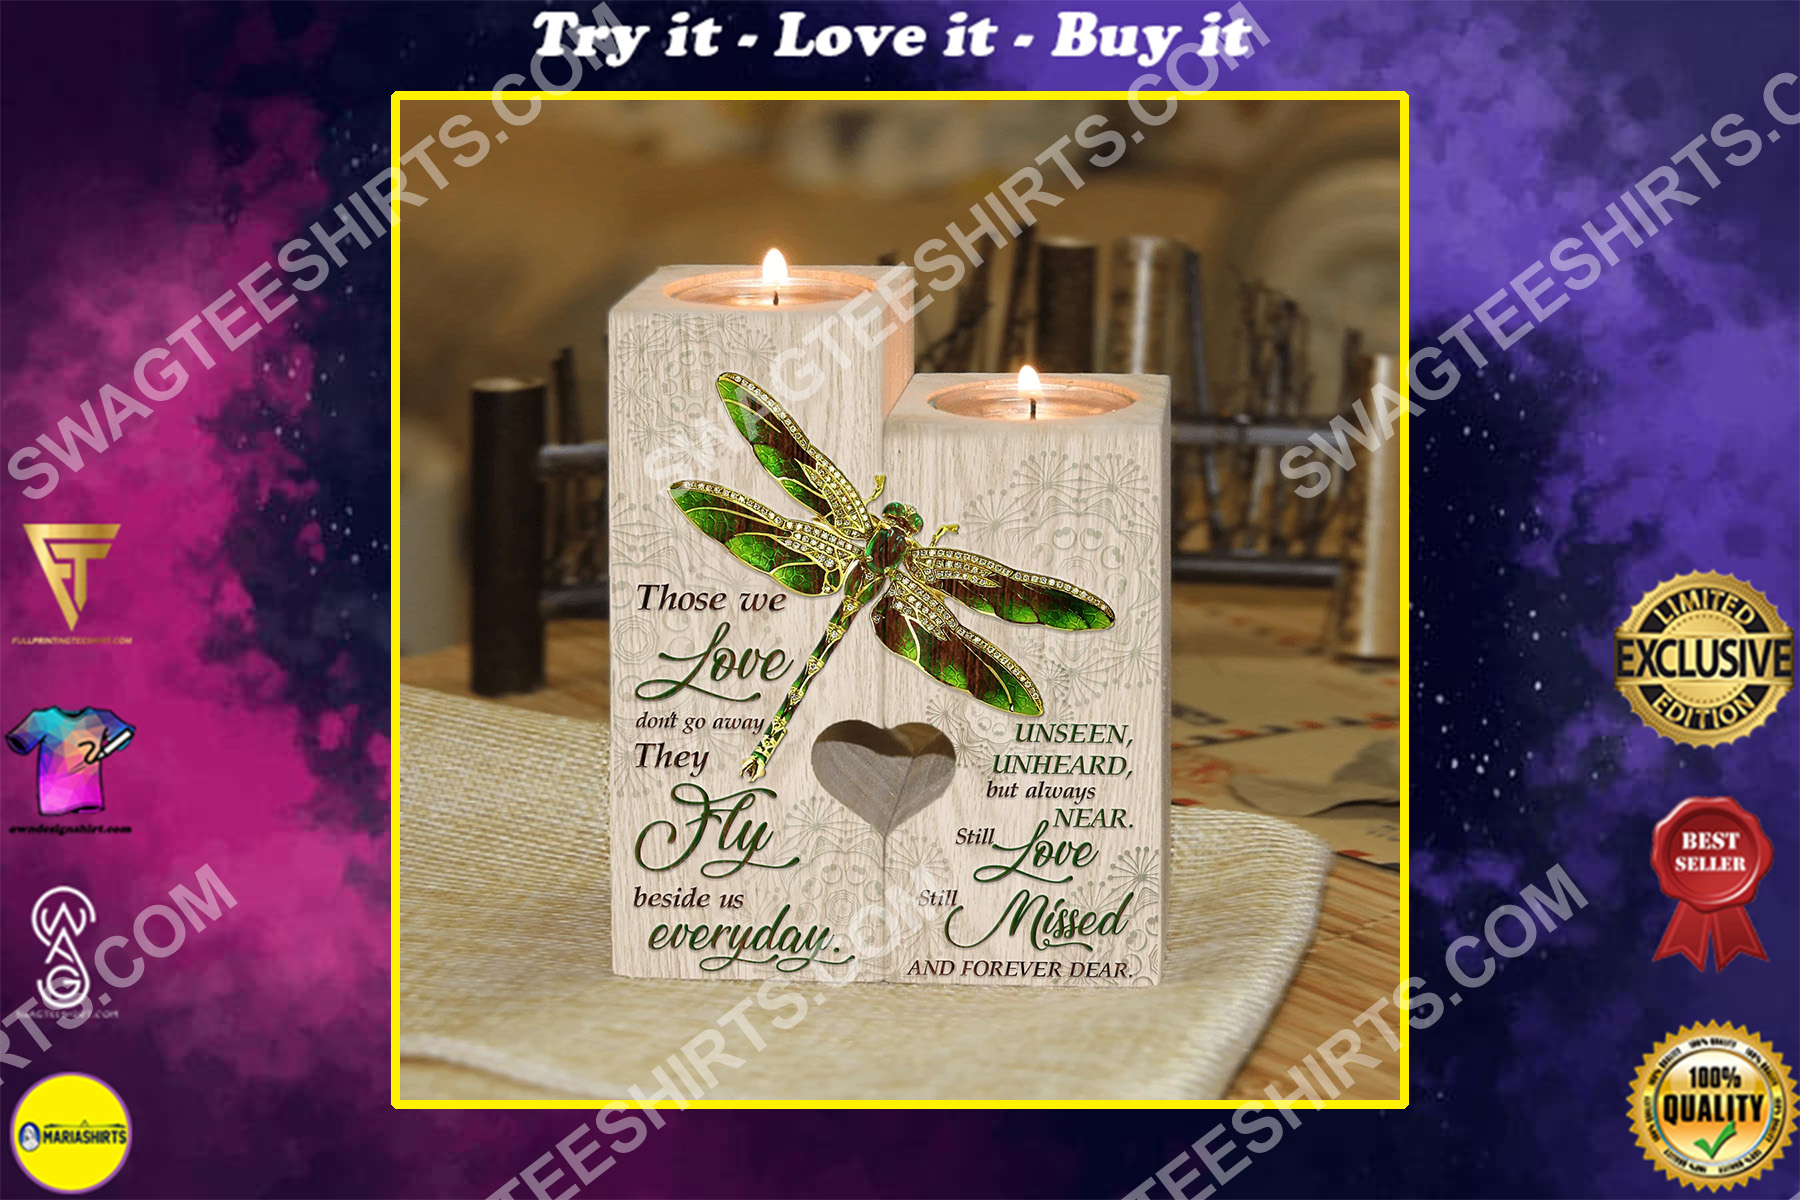 dragonfly those we love dont go away they walk beside us everyday candle holder